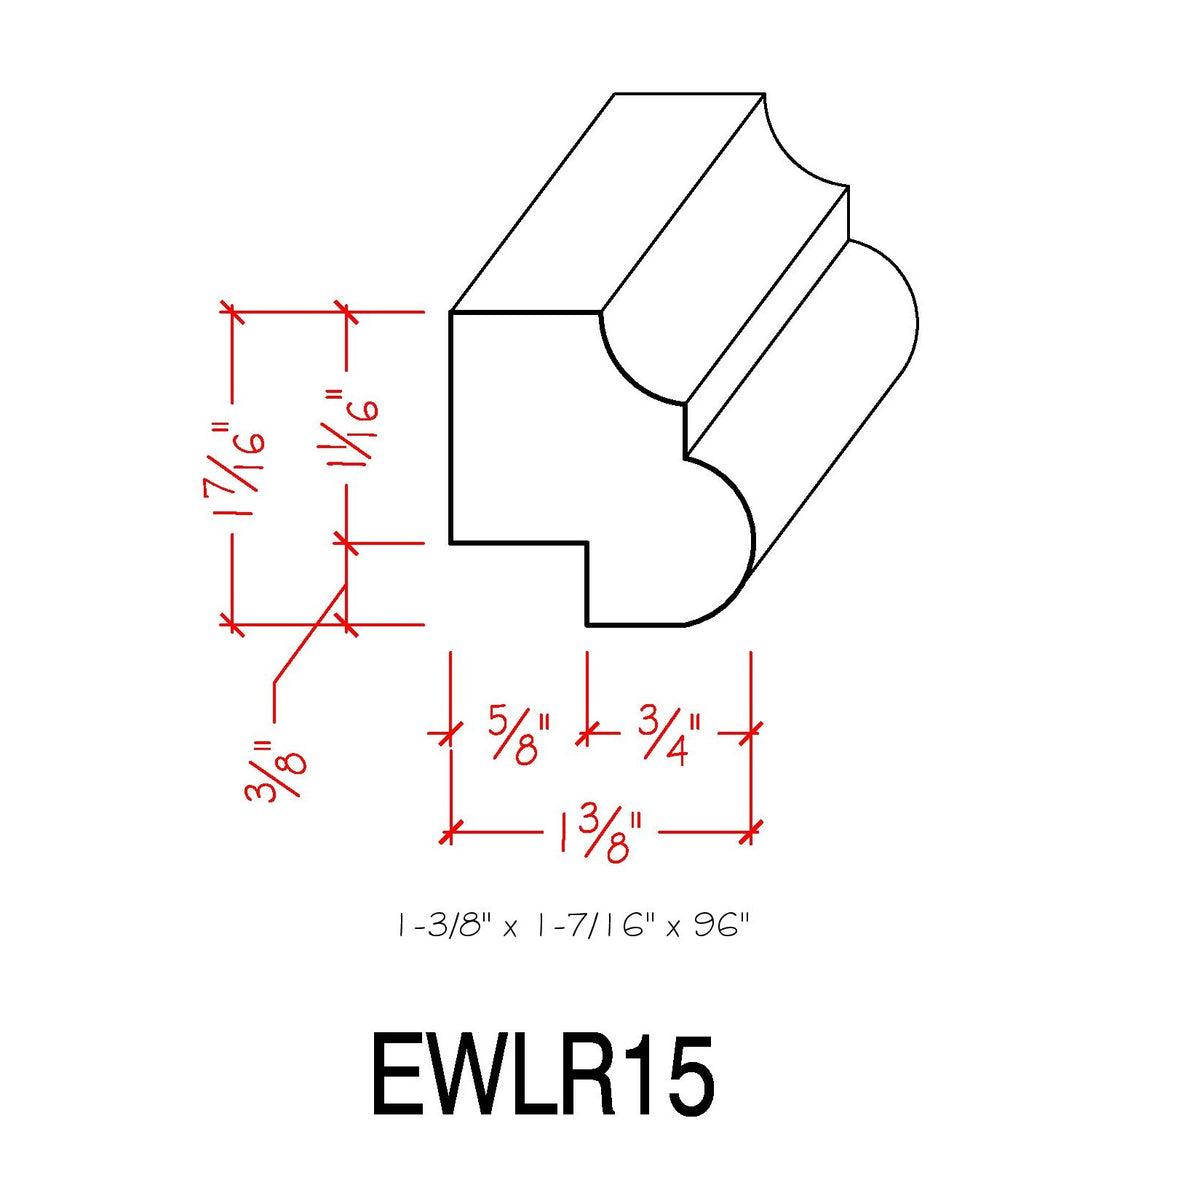 Light Rail EWLR15 Cherry